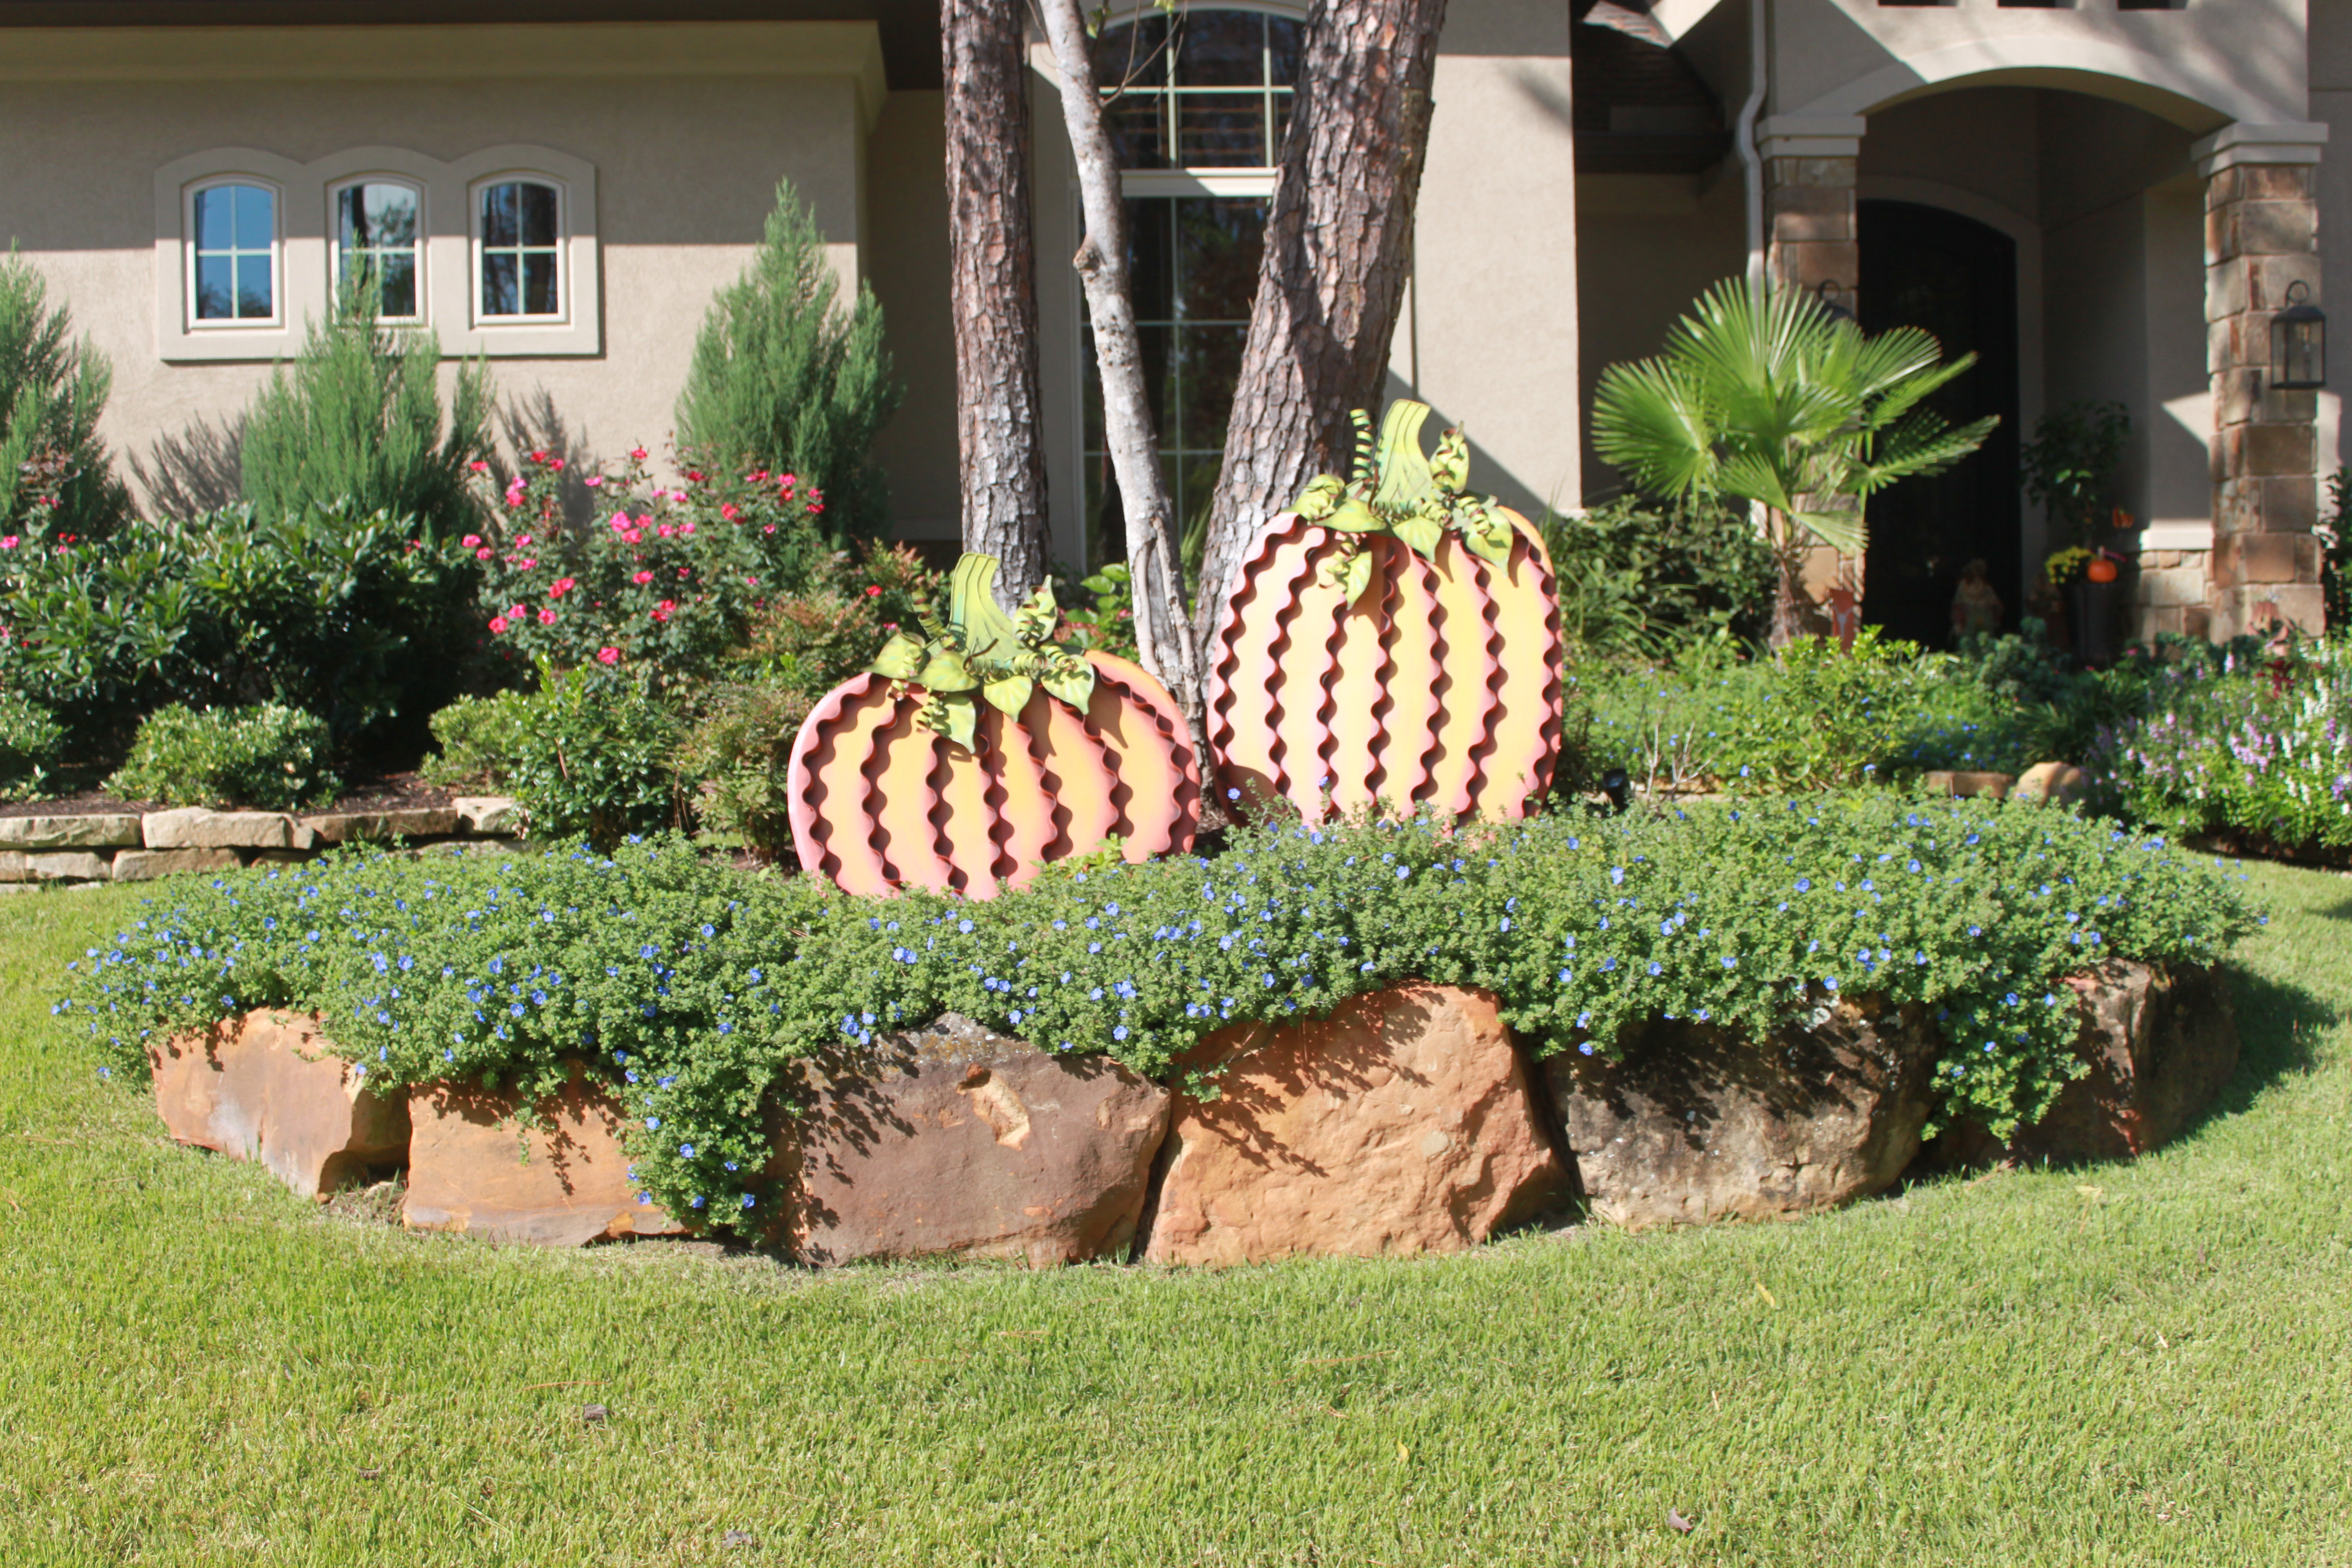 Blue Daze: An important spring flower commonly used in Texas lawn design